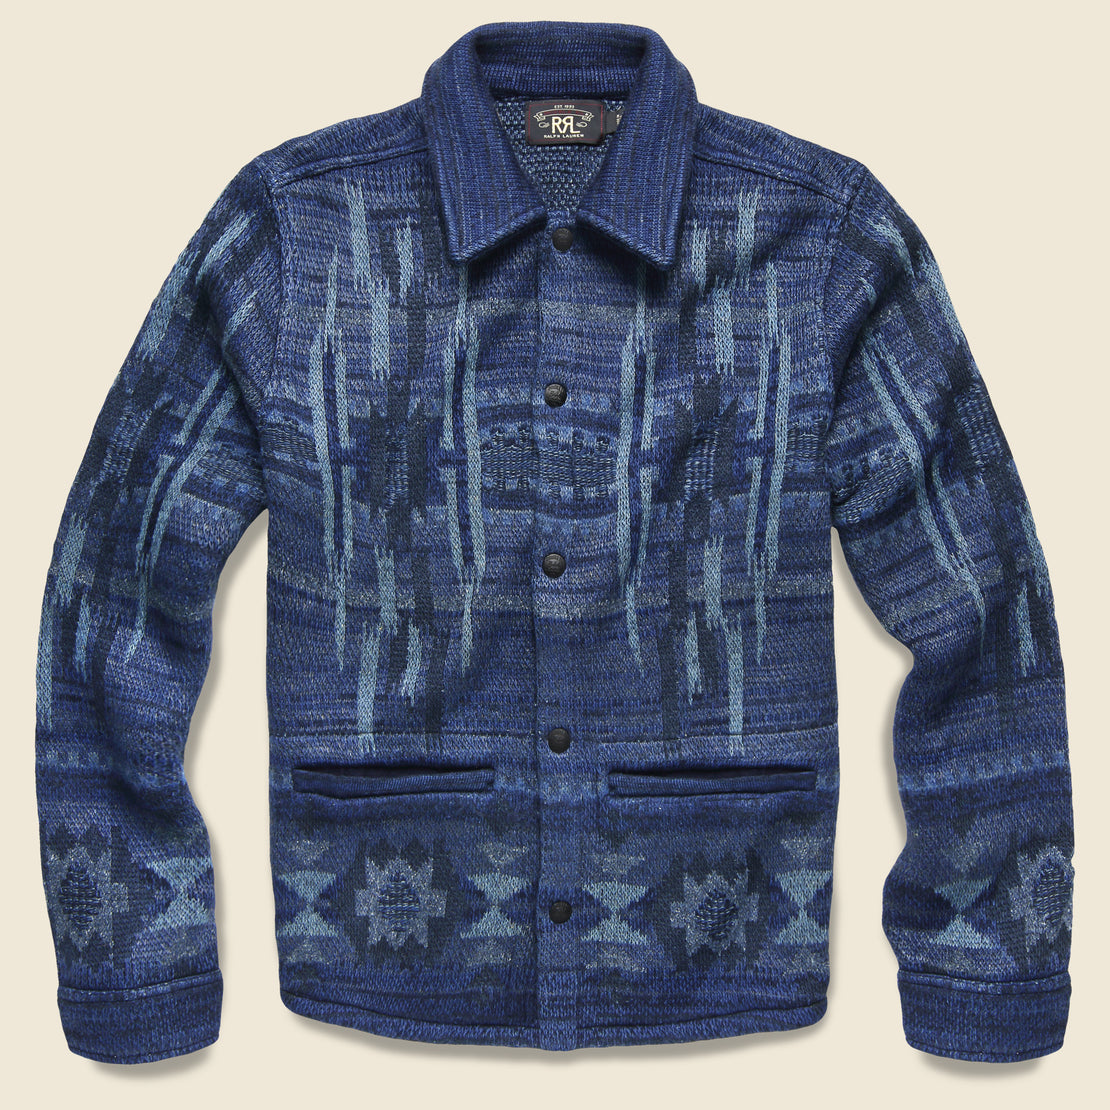 RRL Chimayo Birdseye Jacquard Workshirt Sweater - Indigo